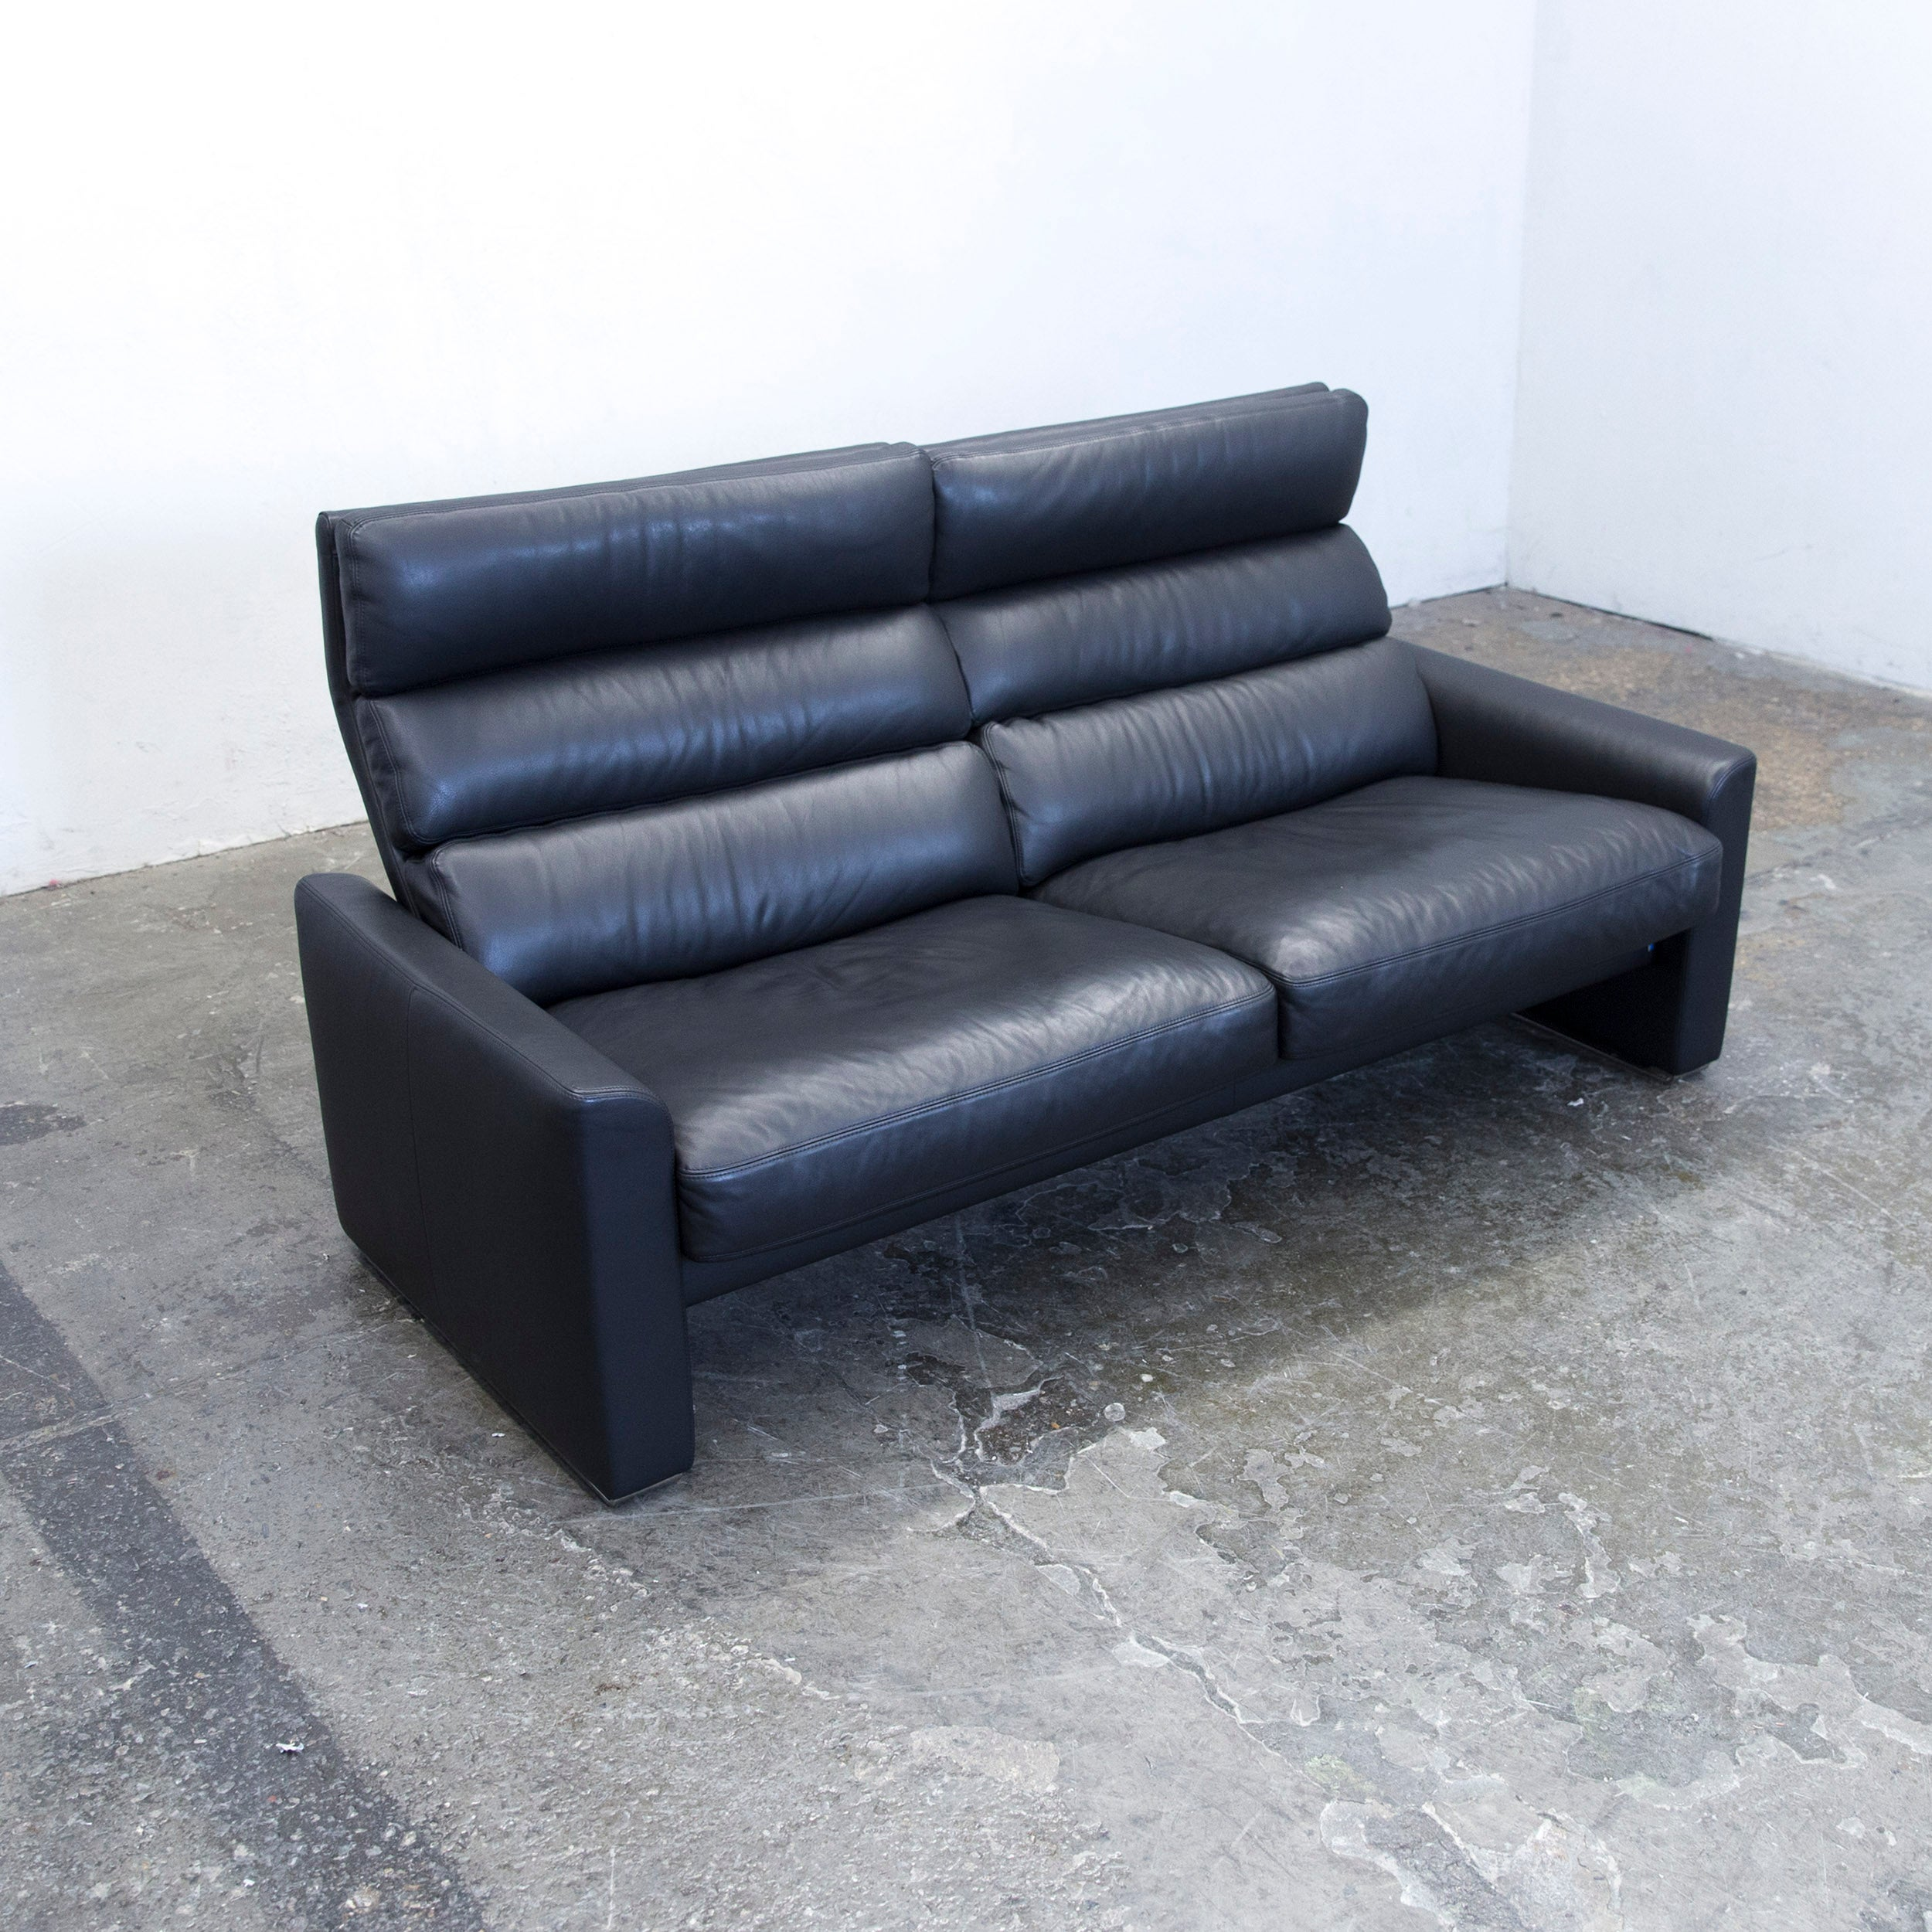 Erpo Soho Designer Sofa Leather Black Two Seat Couch Modern Function For Sale At 1stdibs